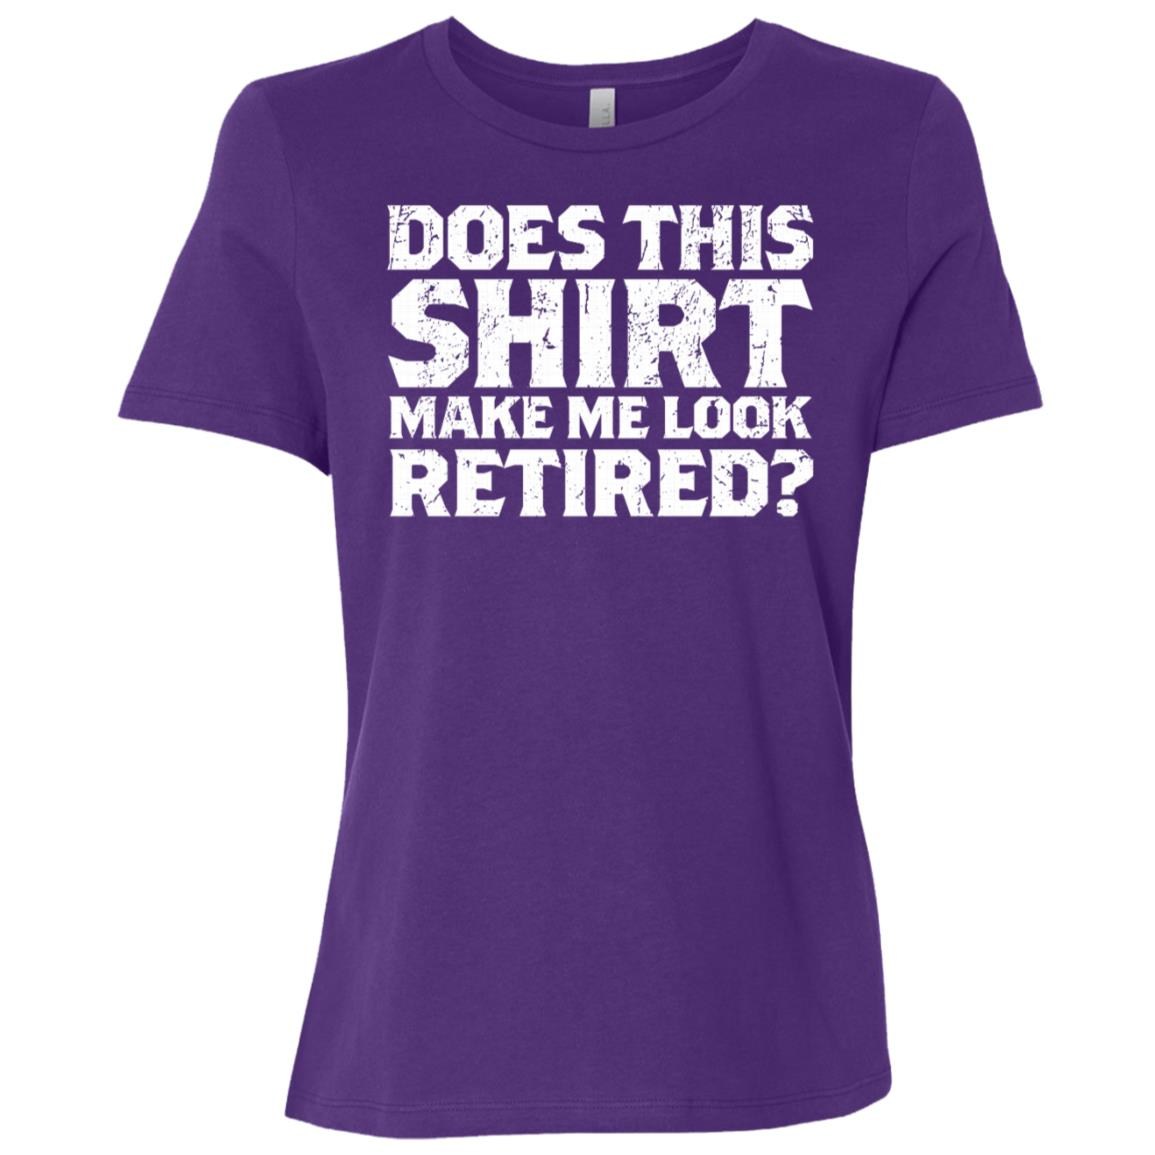 Does This Make Me Look Retired Daddy Sleeves Women Short Sleeve T-Shirt